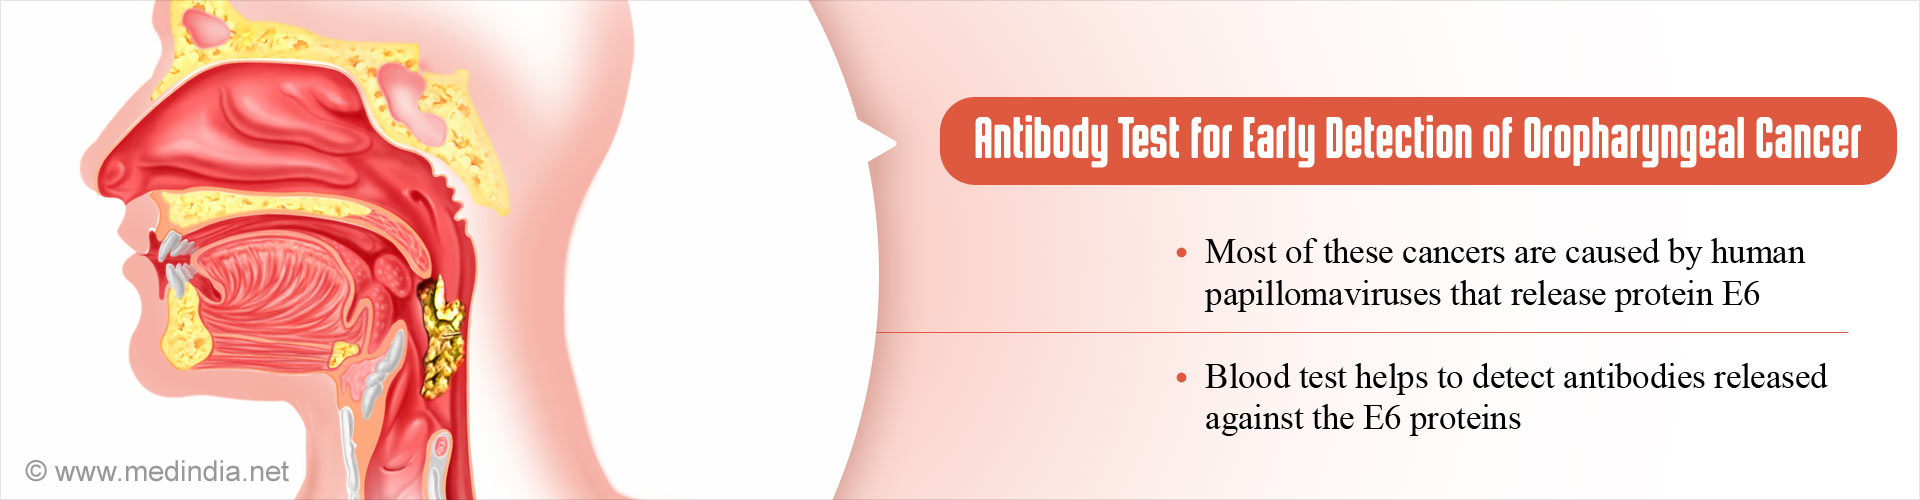 New Antibody Test Helps in Early Detection of Oral Cancer